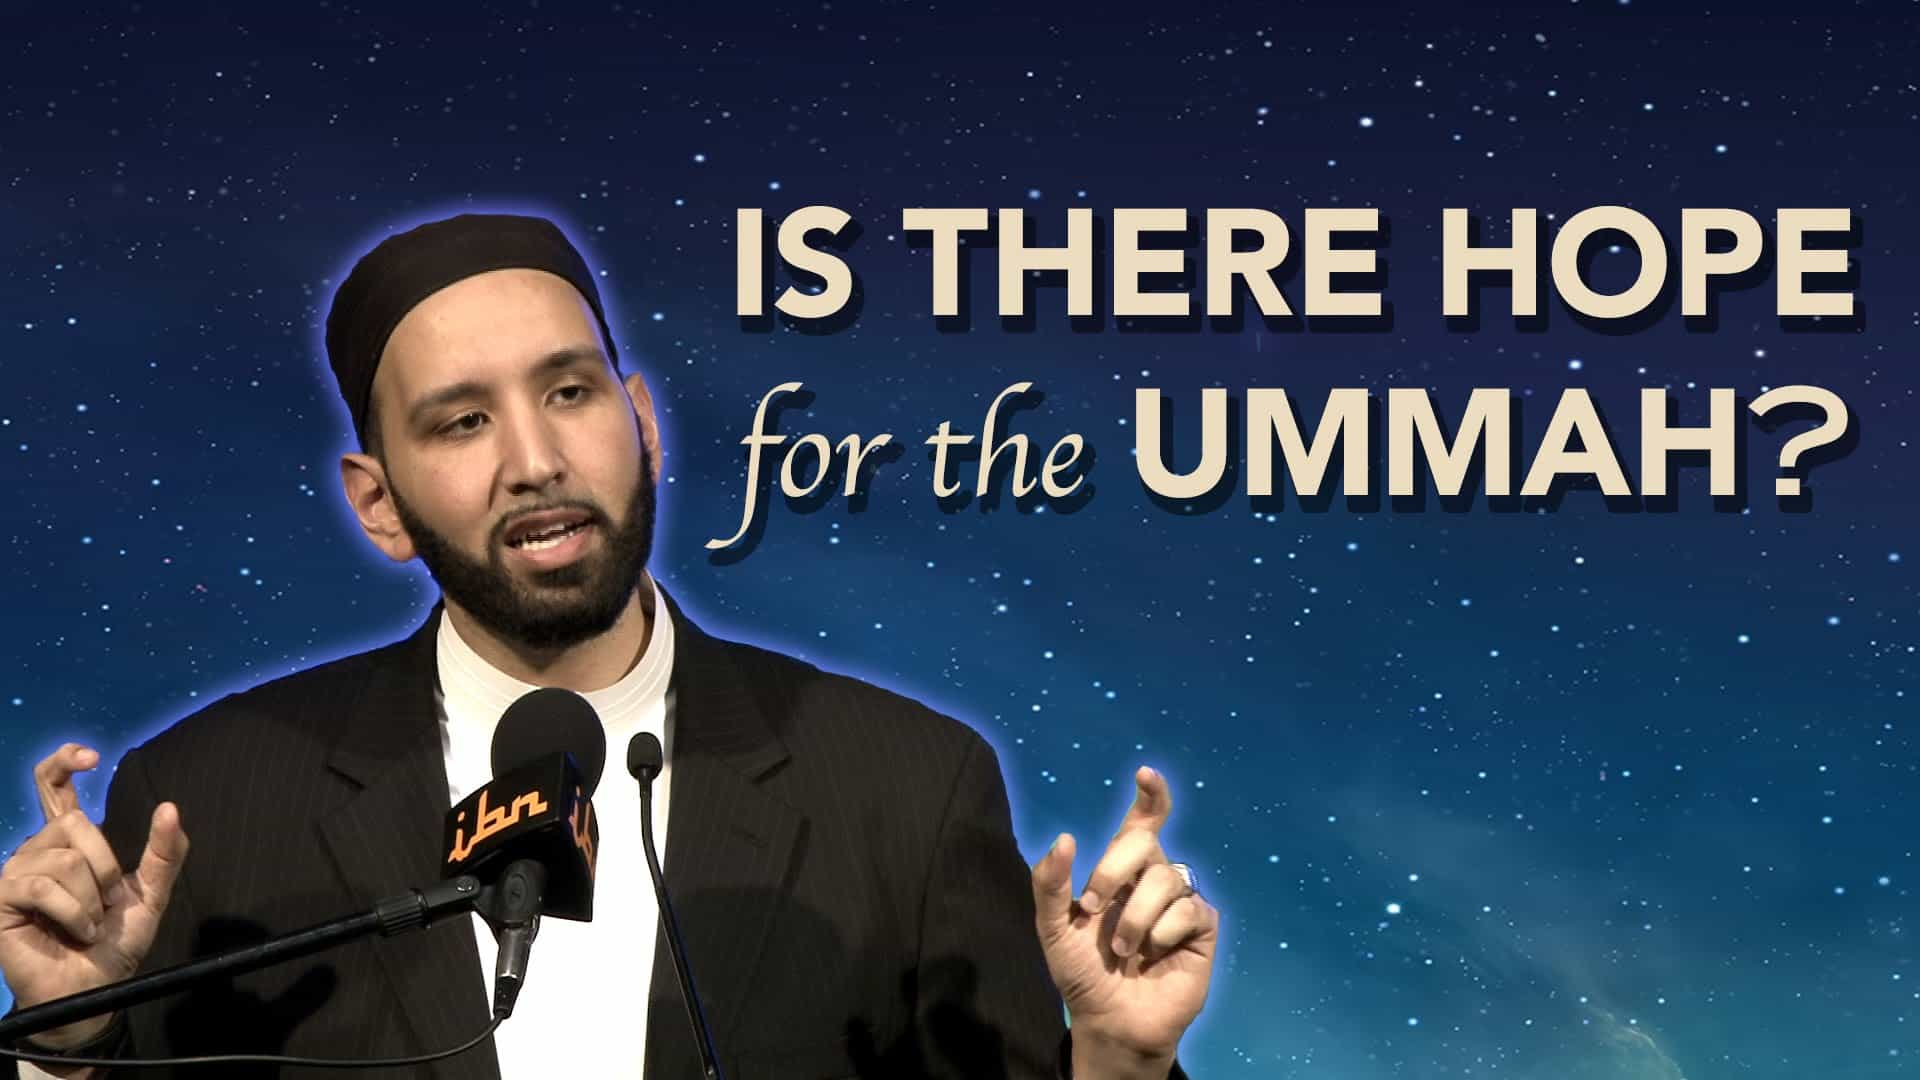 Omar Suleiman – Is There Hope for the Ummah?